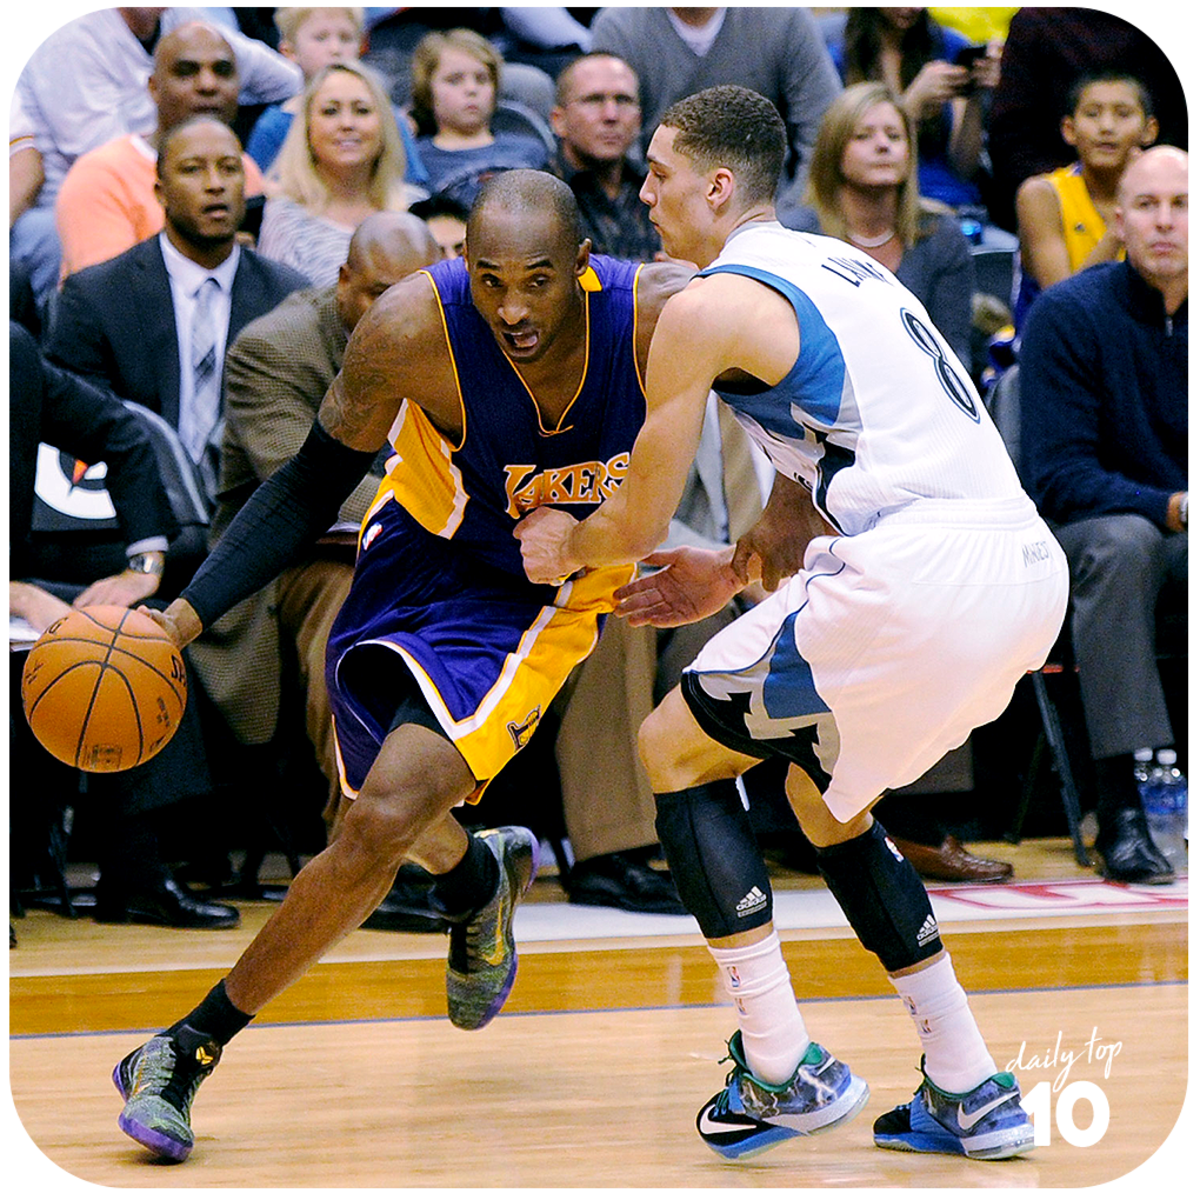 Kobe Bryant makes his move against Zack LaVine.